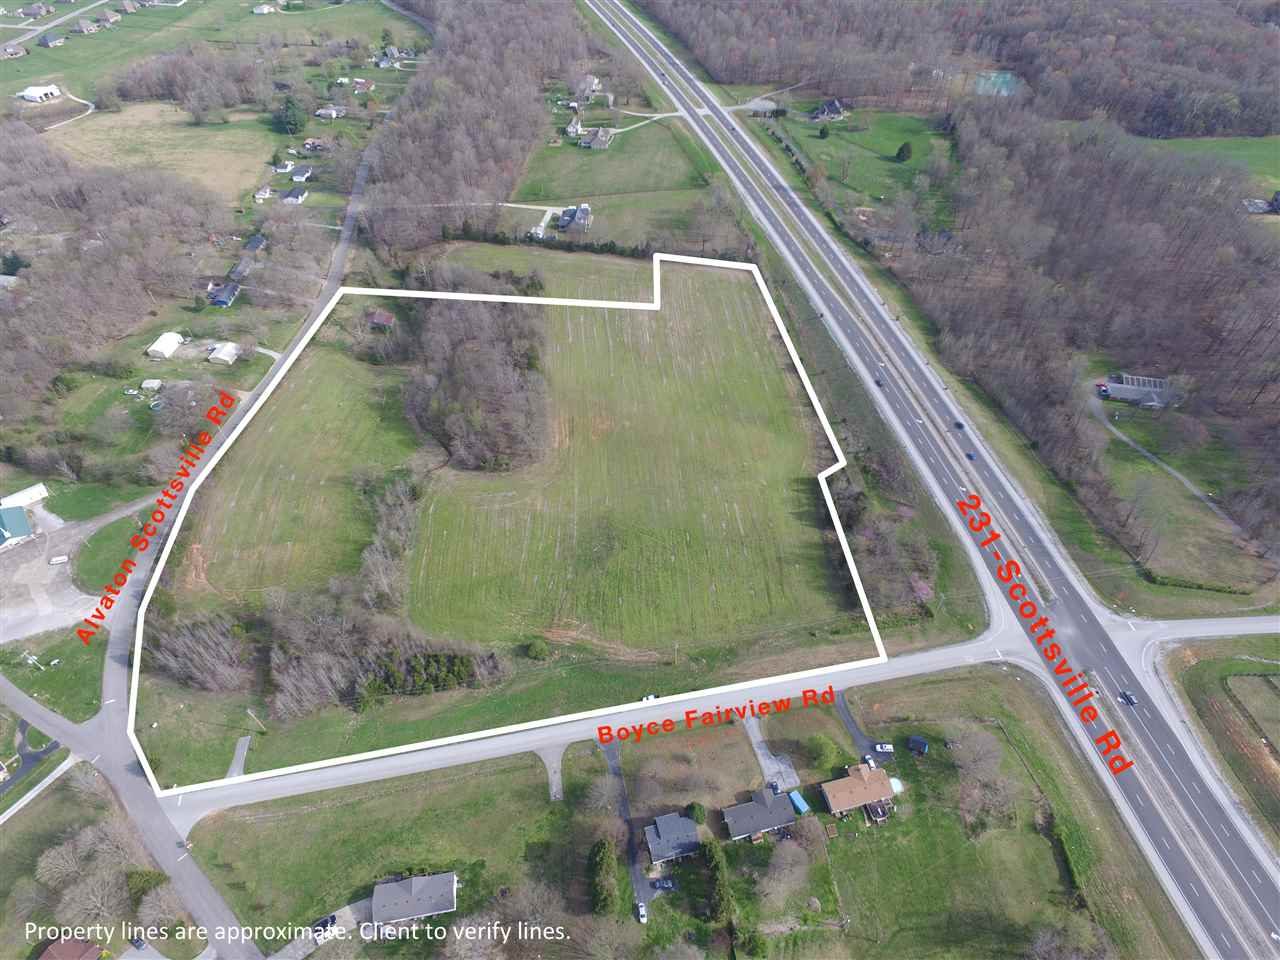 17.17 acres in Alvaton fronting three roads; Scottsville Rd ( HWY 231) Boyce Fairview Rd, Alvaton Scottsville Rd. Great opportunity as an investment, potential developer or a beautiful spot to build a home with acreage. One of South Ky's most desirable areas. A very rare opportunity.